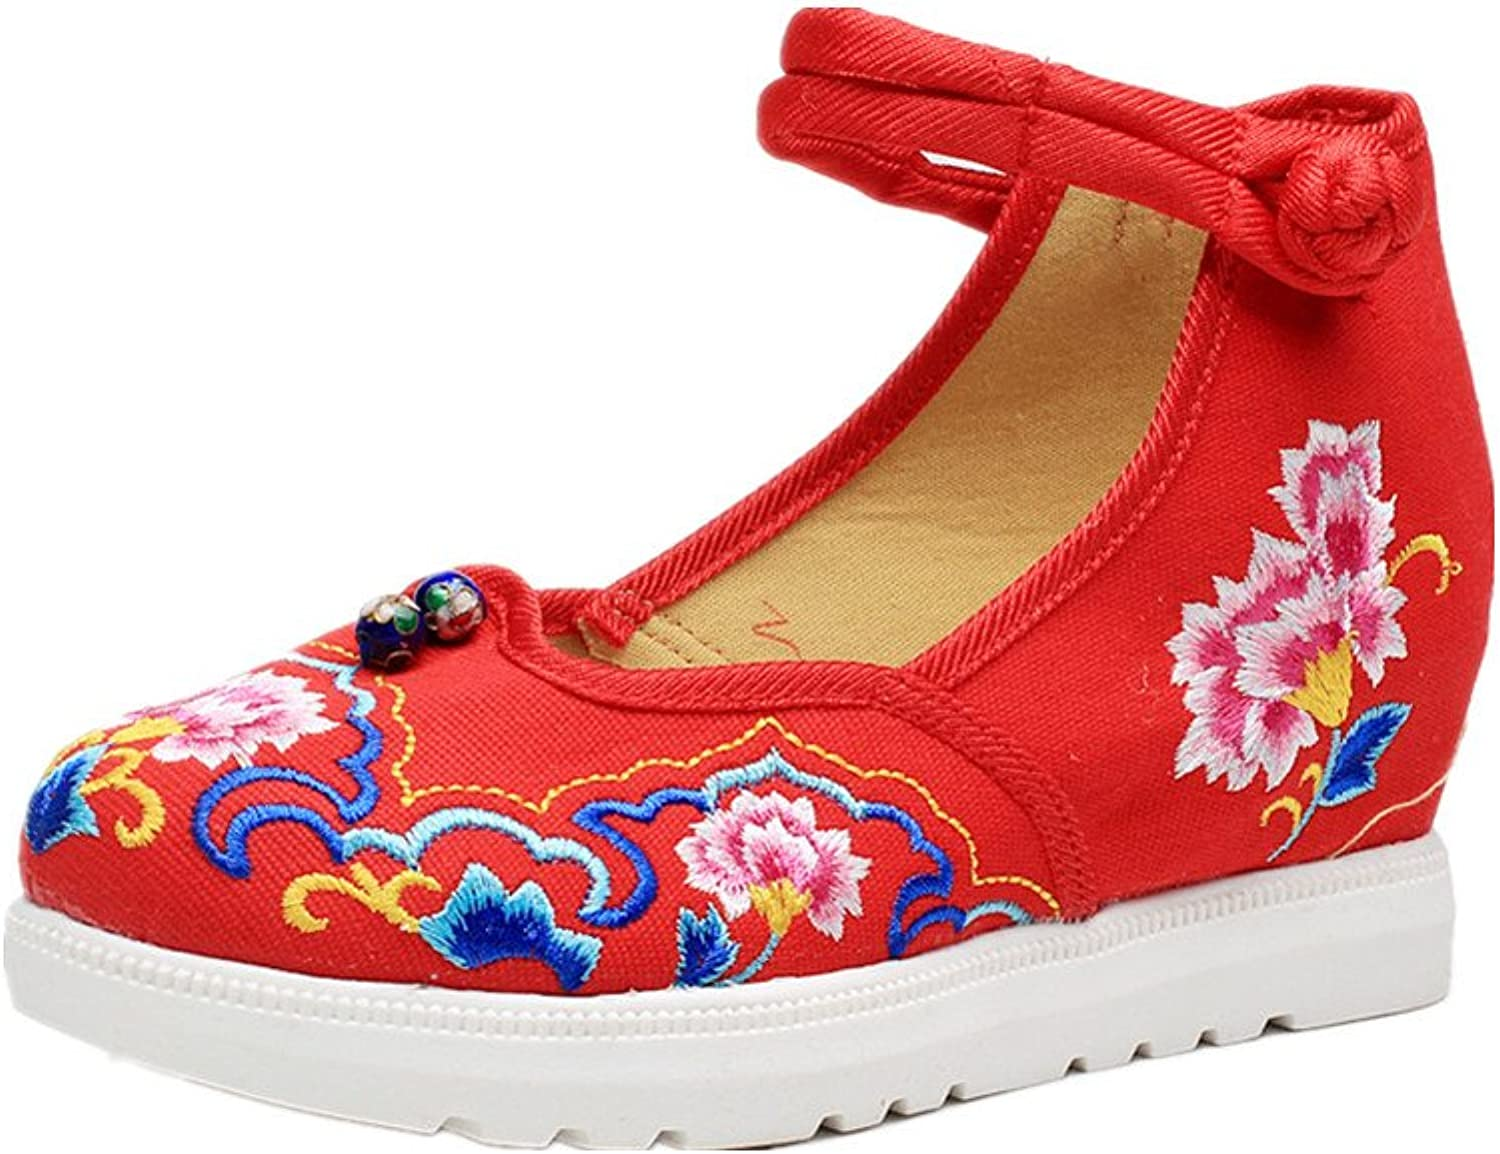 Tianrui Crown Embroidered Flower Wedgew shoes Increasing shoes Sandals Cheongsam shoes